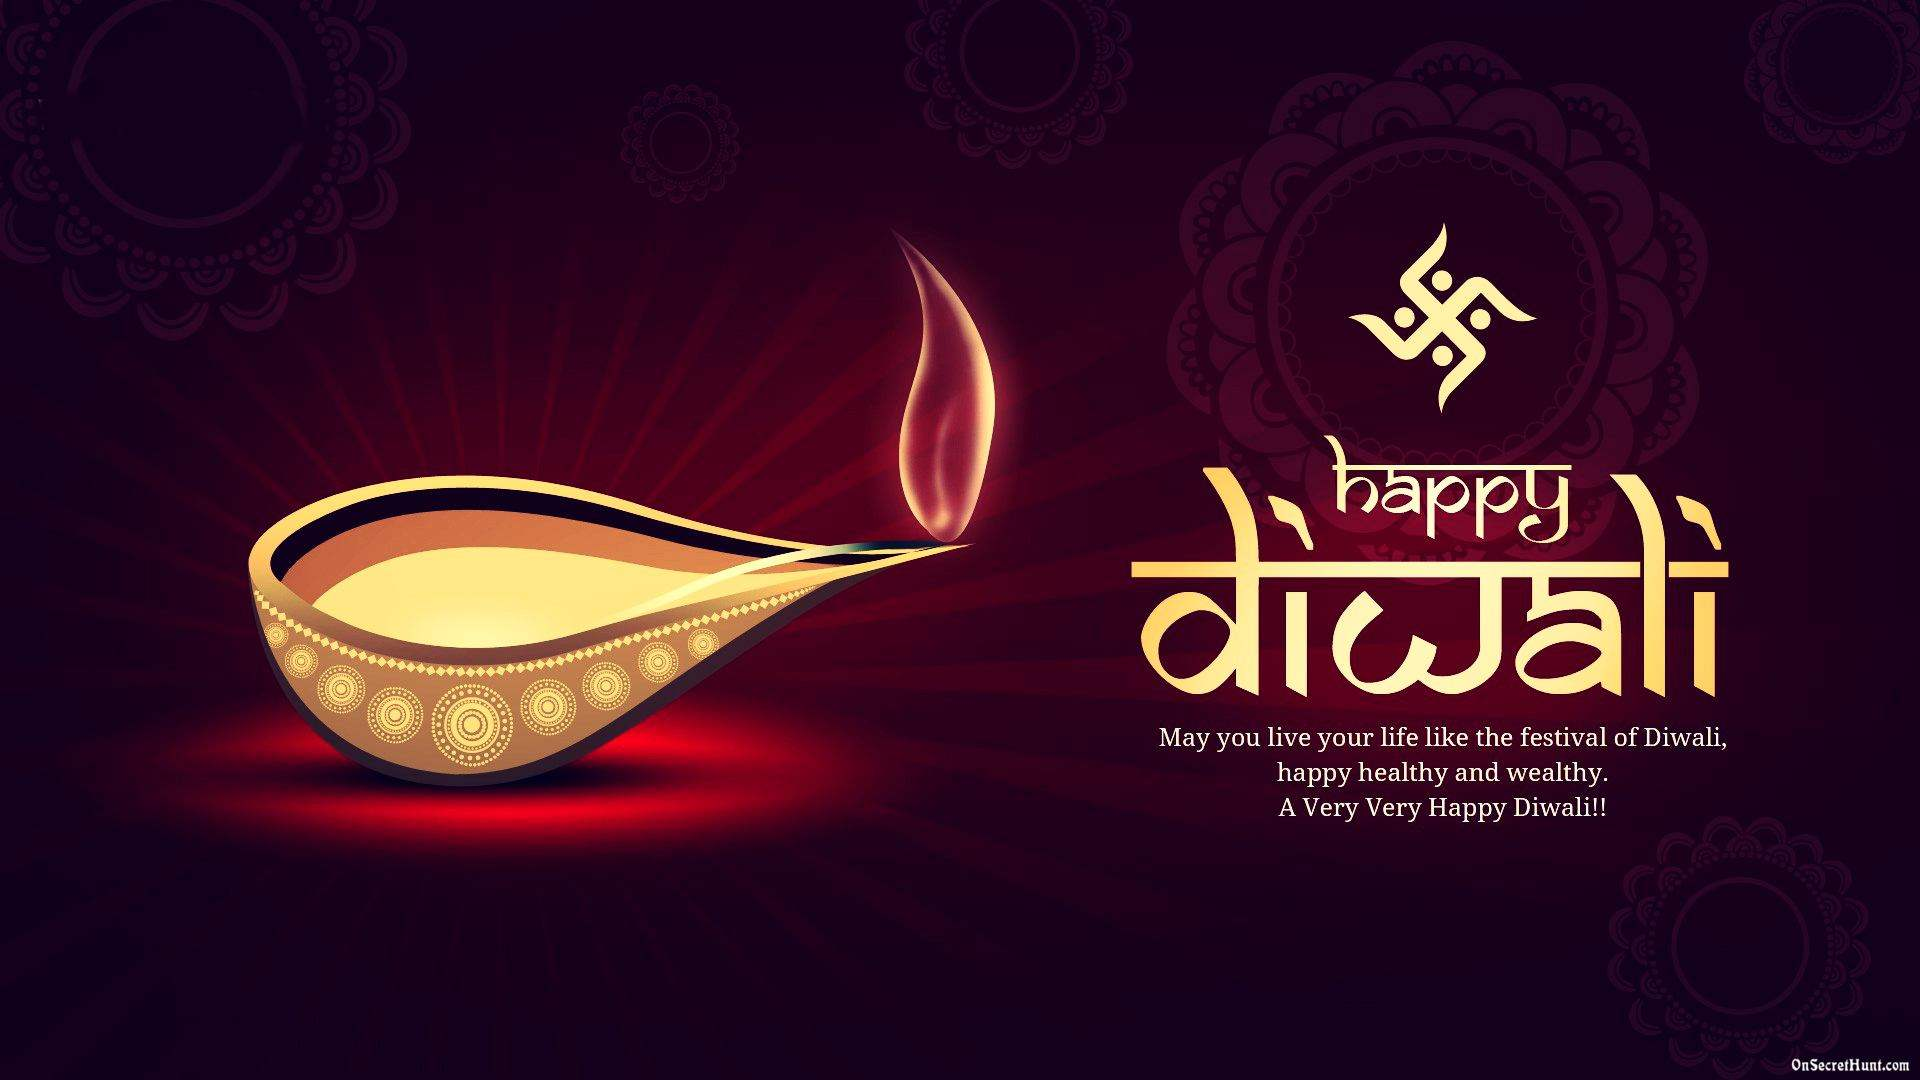 Full hd diwali wallpapers and greeting cards - Hd wallpaper happy diwali ...